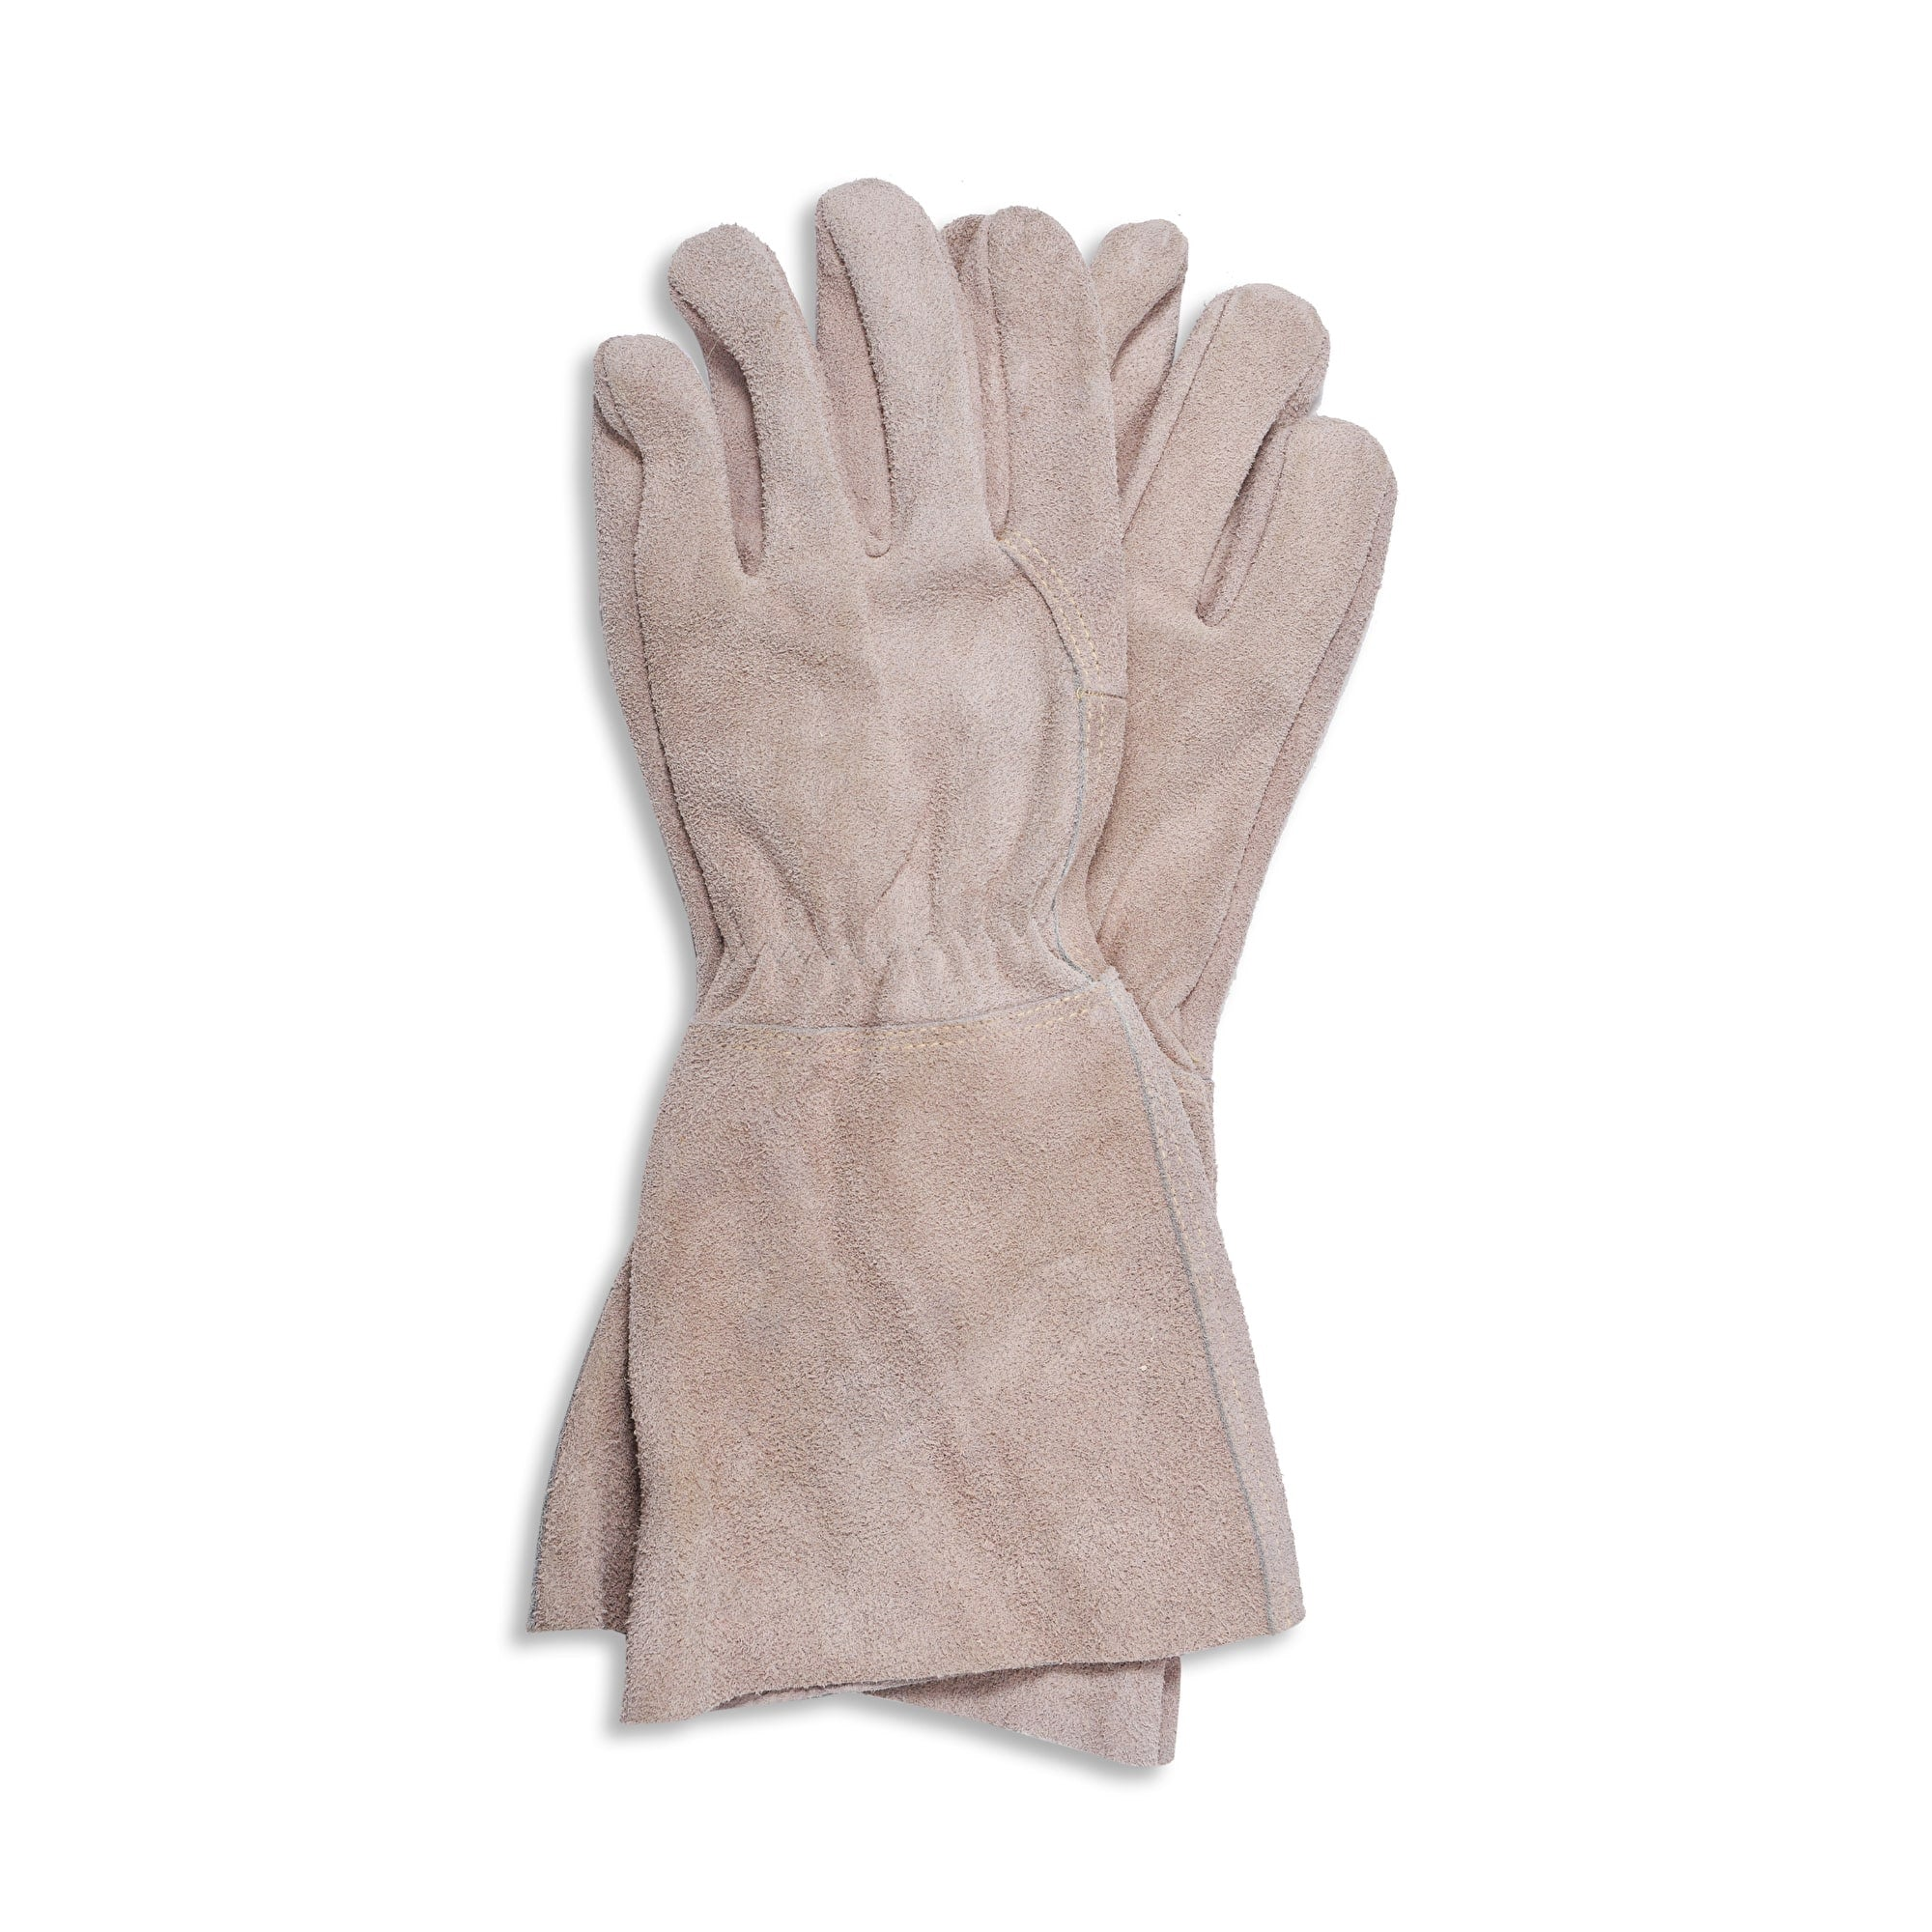 Suede Gauntlet Gloves - End of line